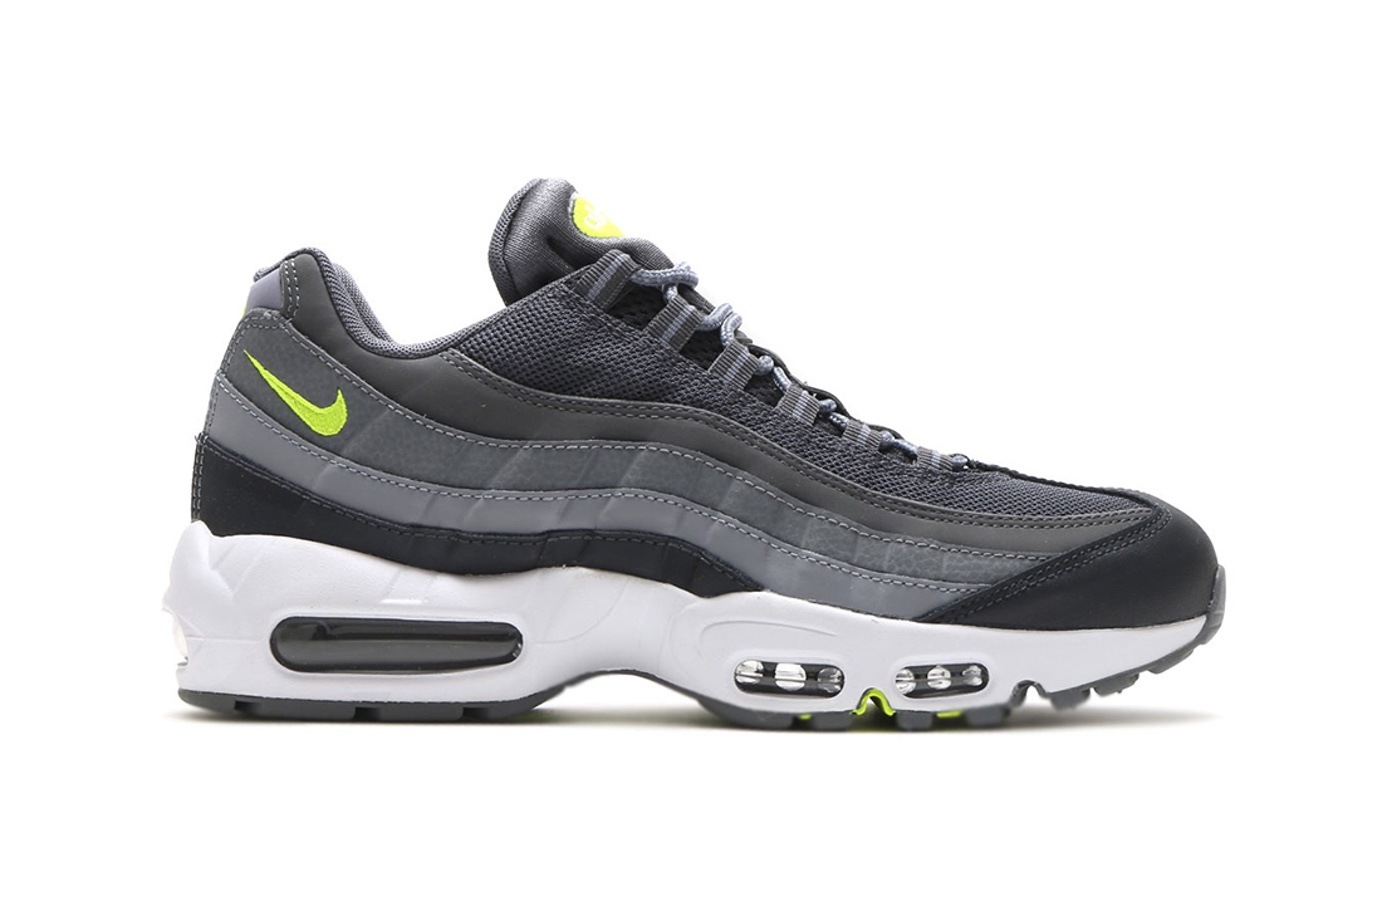 grossiste 05269 dbecf La Nike Air Max 95